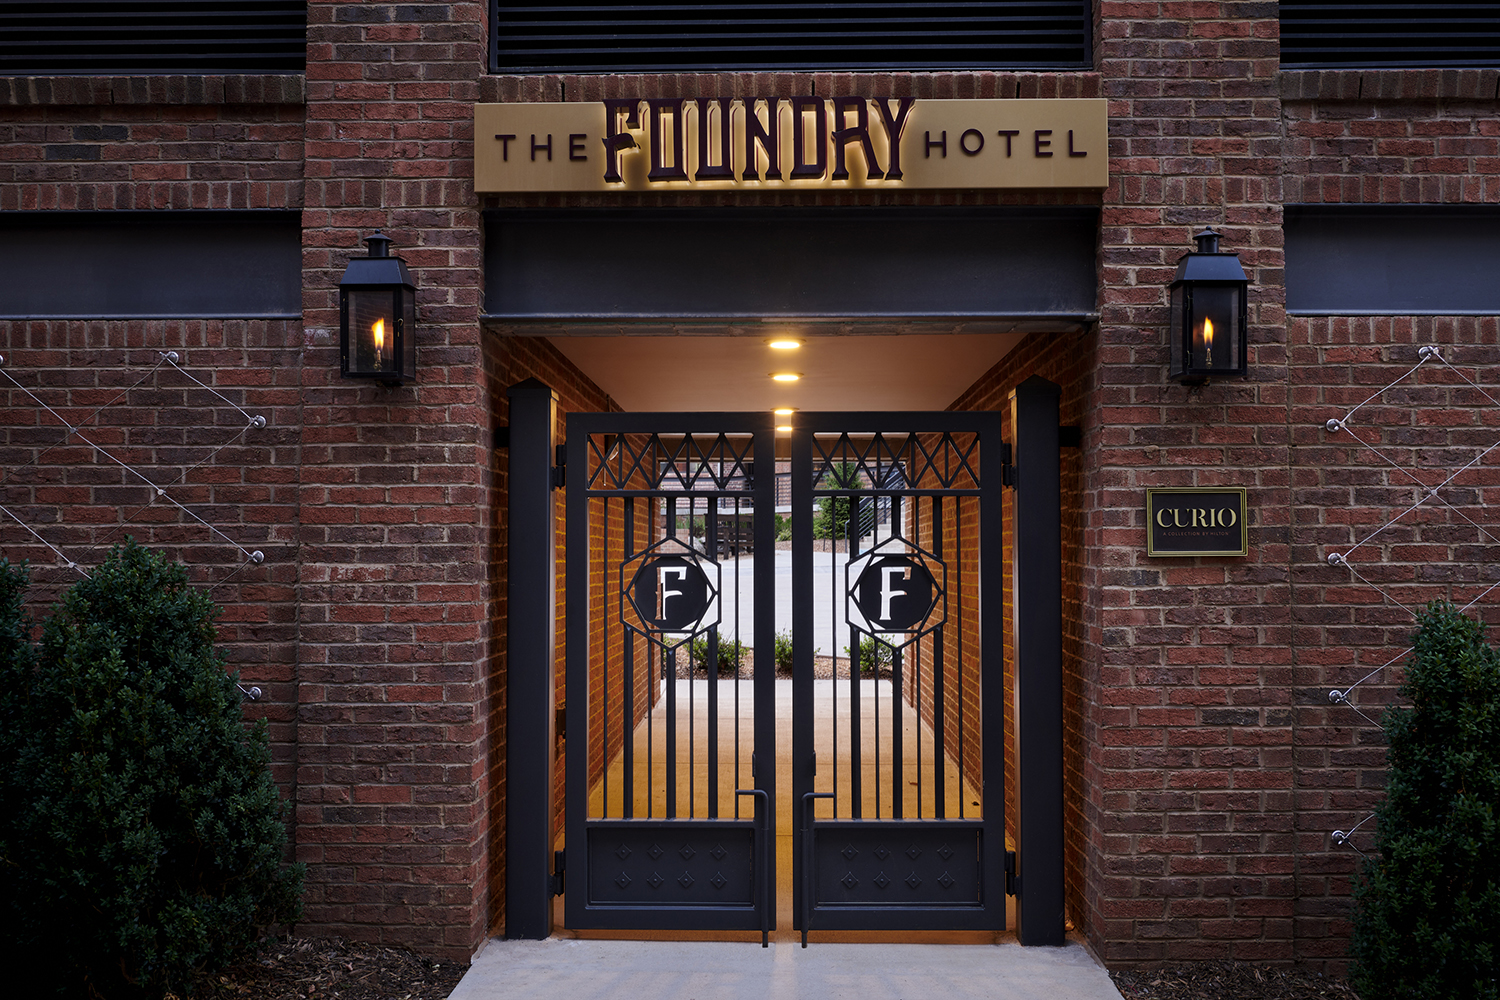 The Foundry Hotel is a renovated former steel foundry in Asheville, North Carolina.